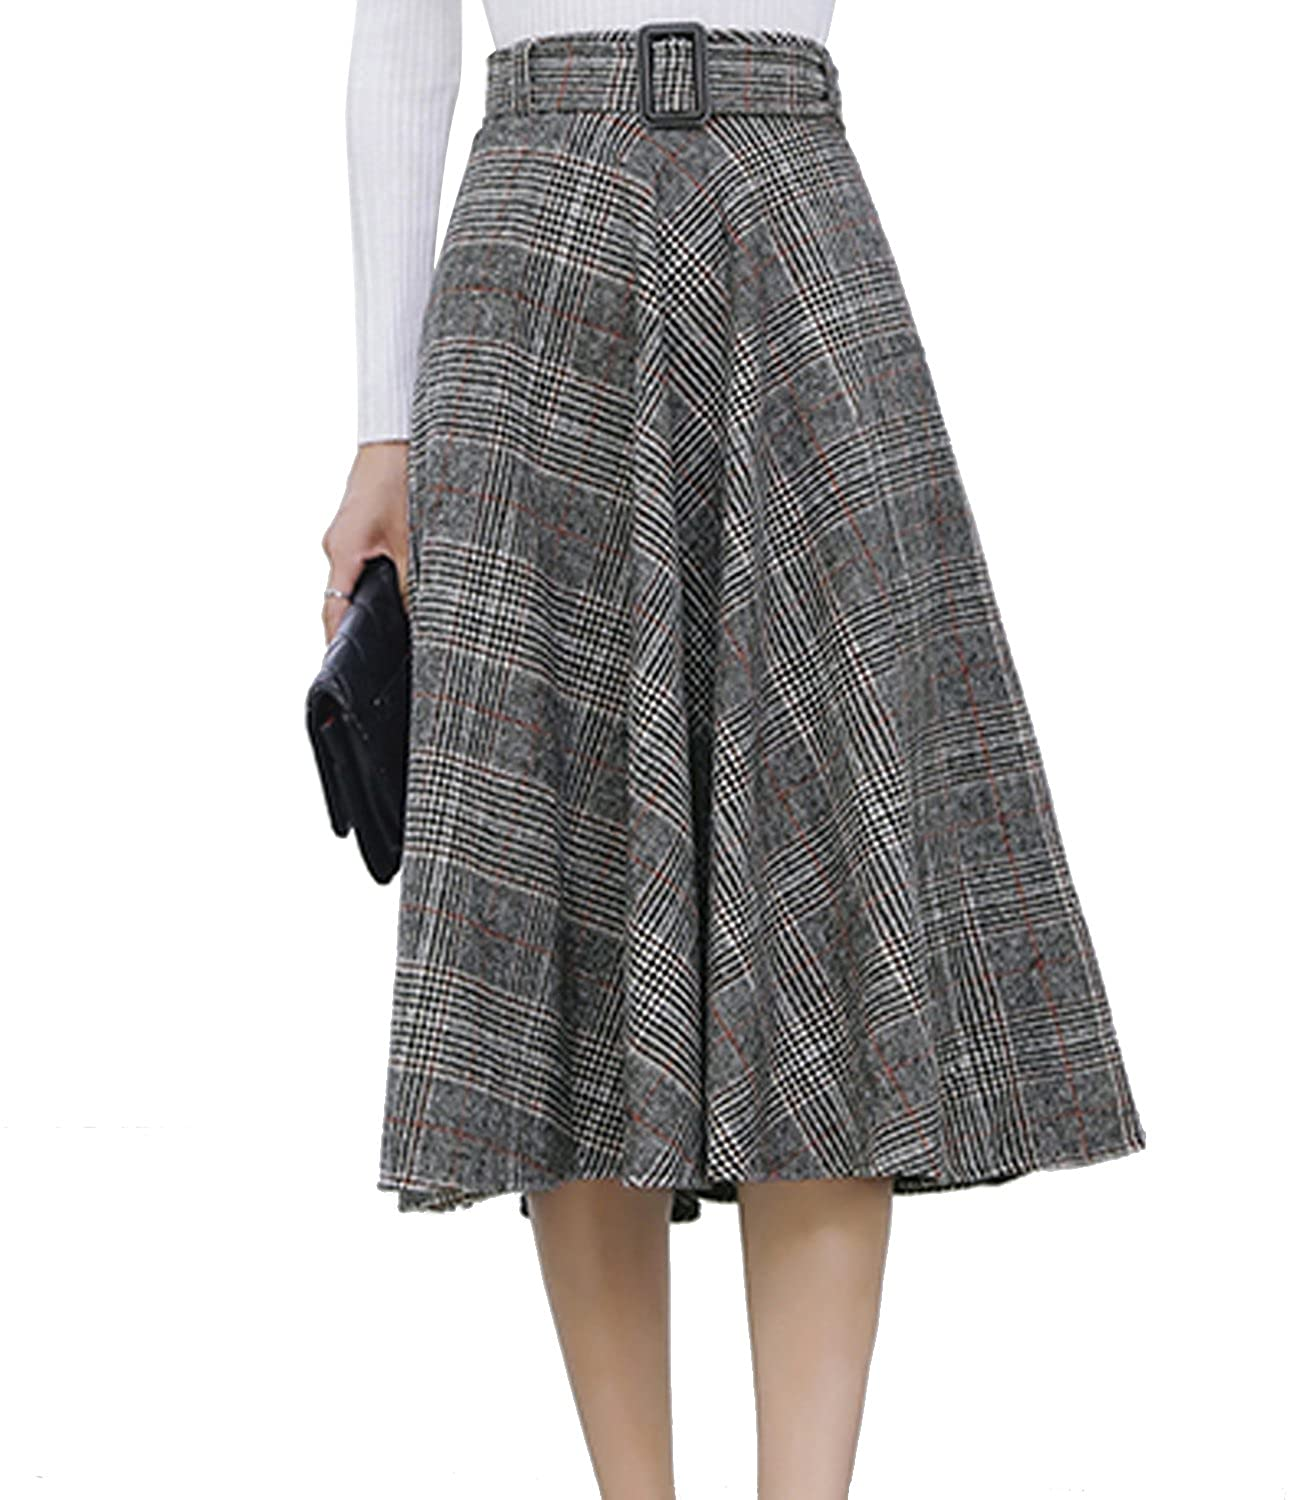 Edwardian Ladies Clothing – 1900, 1910s, Titanic Era Sanifer Womens Warm Woolen Plaid Gray Pleated A Line Skirt with Belt $27.99 AT vintagedancer.com